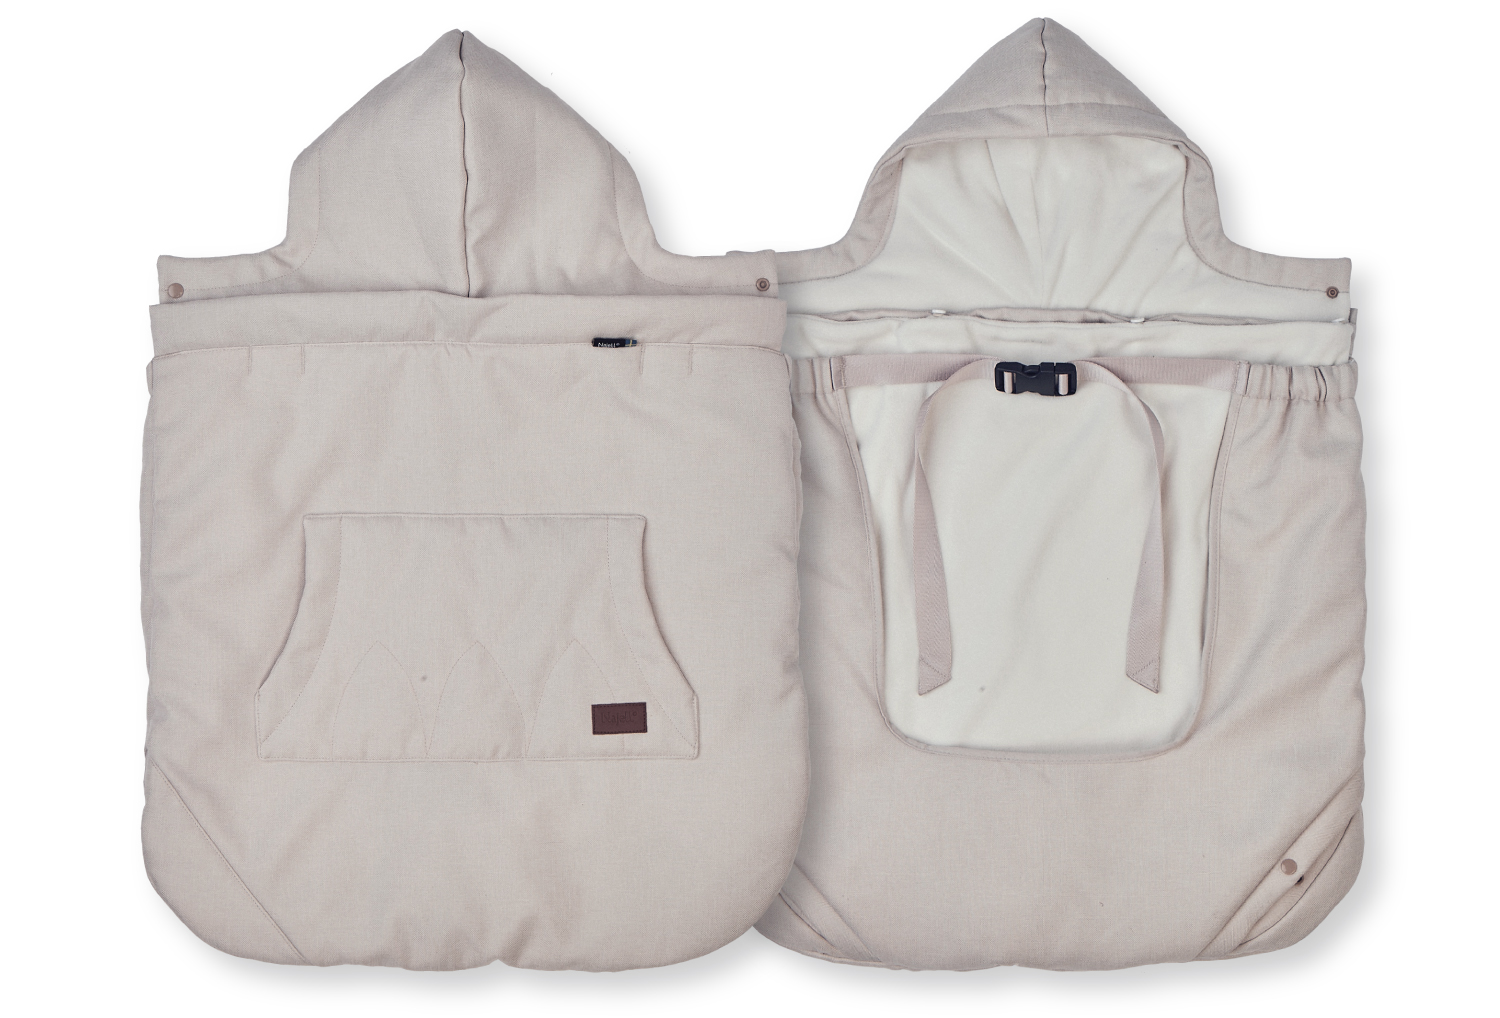 Najell All Weather Cover - Sandy Beige front and back